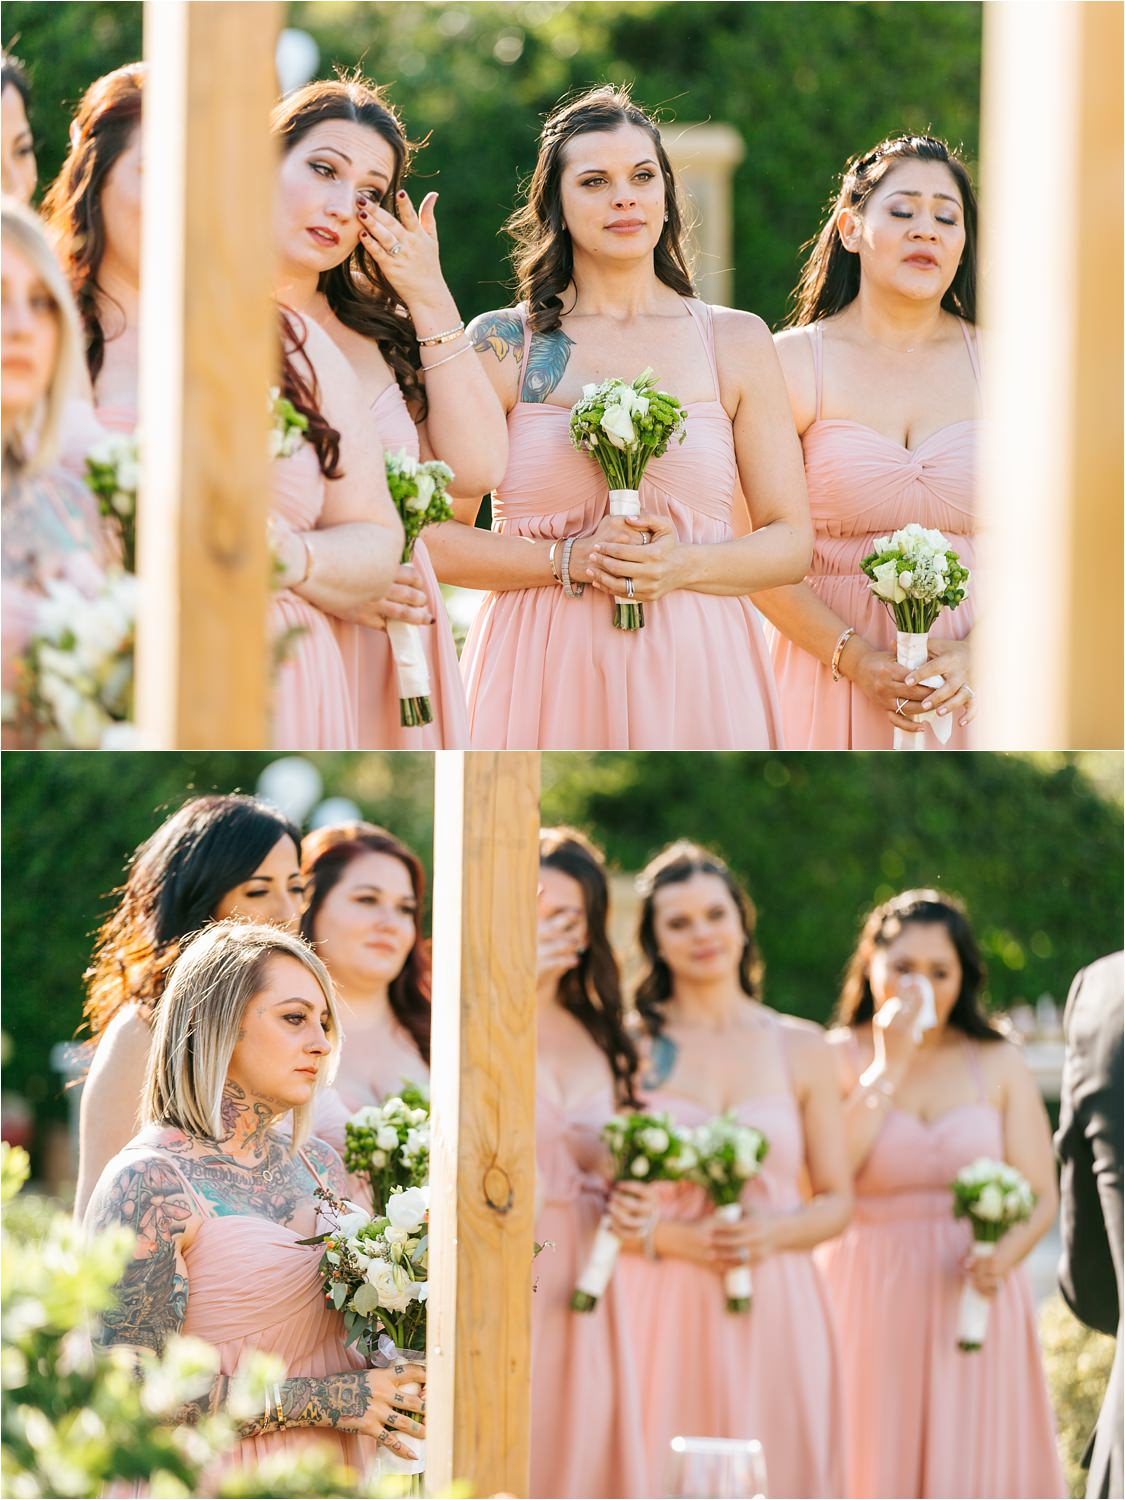 Emotional bridesmaids watching the bride and groom exchange vows - https://brittneyhannonphotography.com